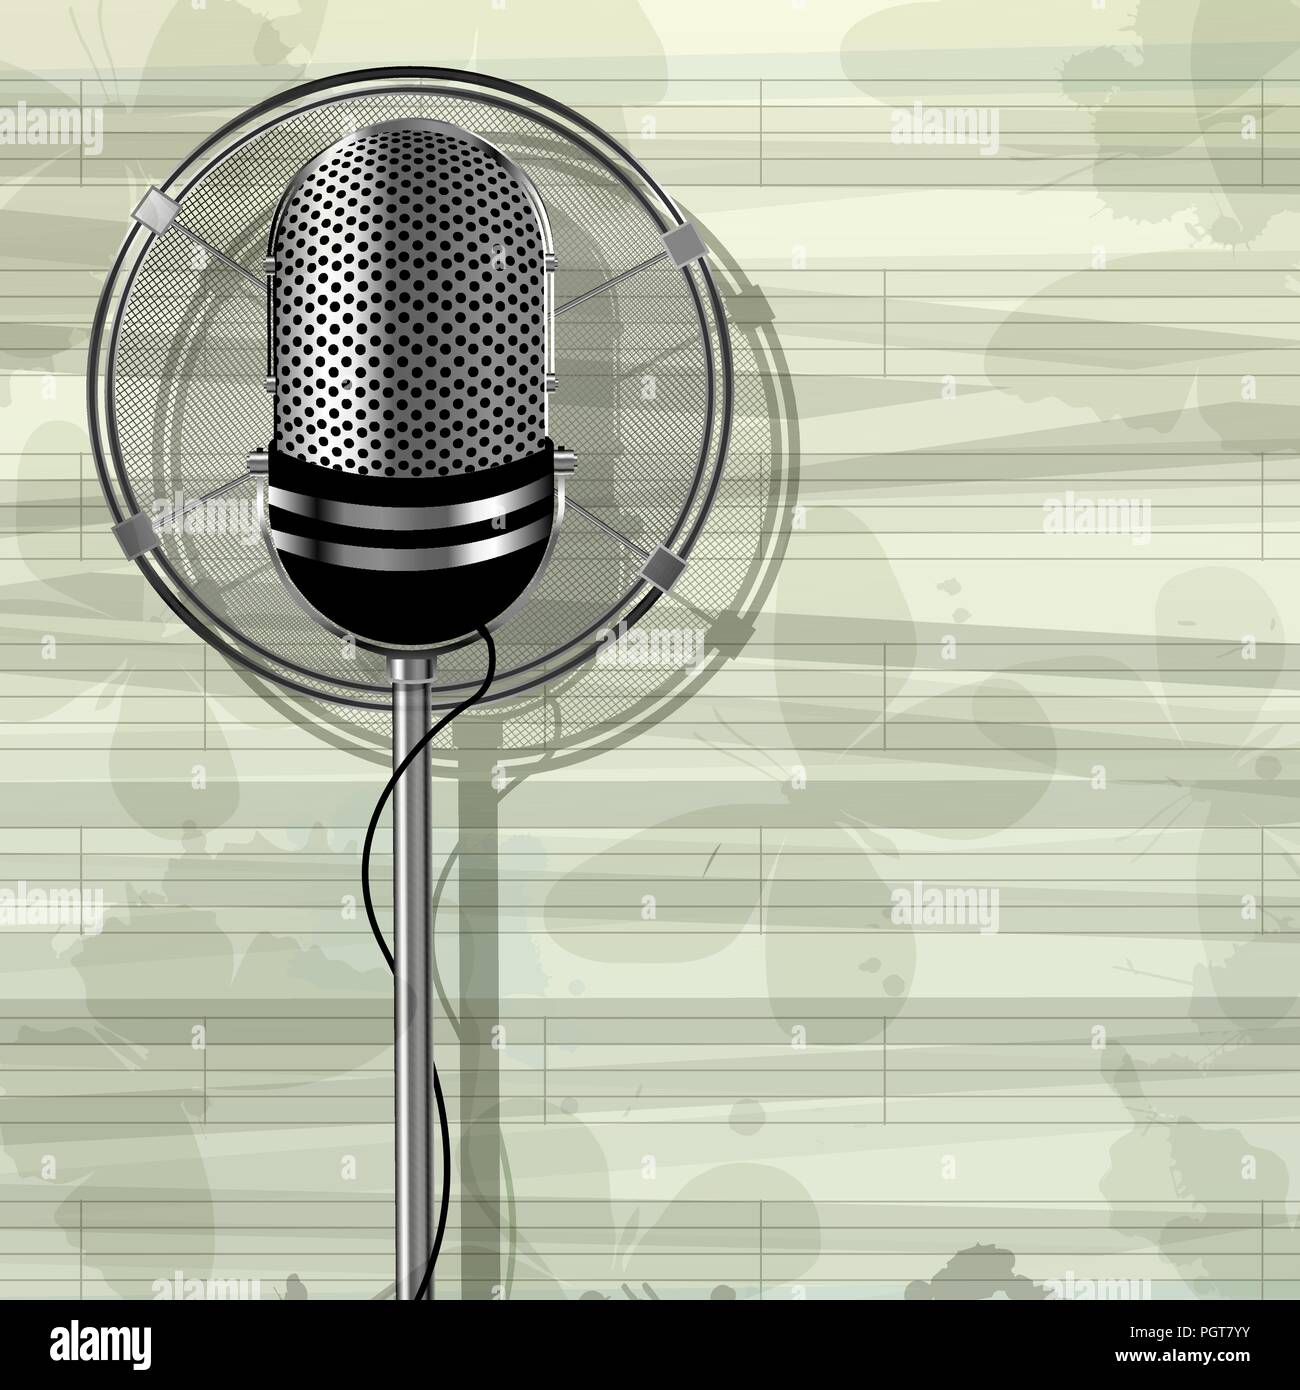 Abstract musical template with retro style metallic microphone and butterflies - Stock Image